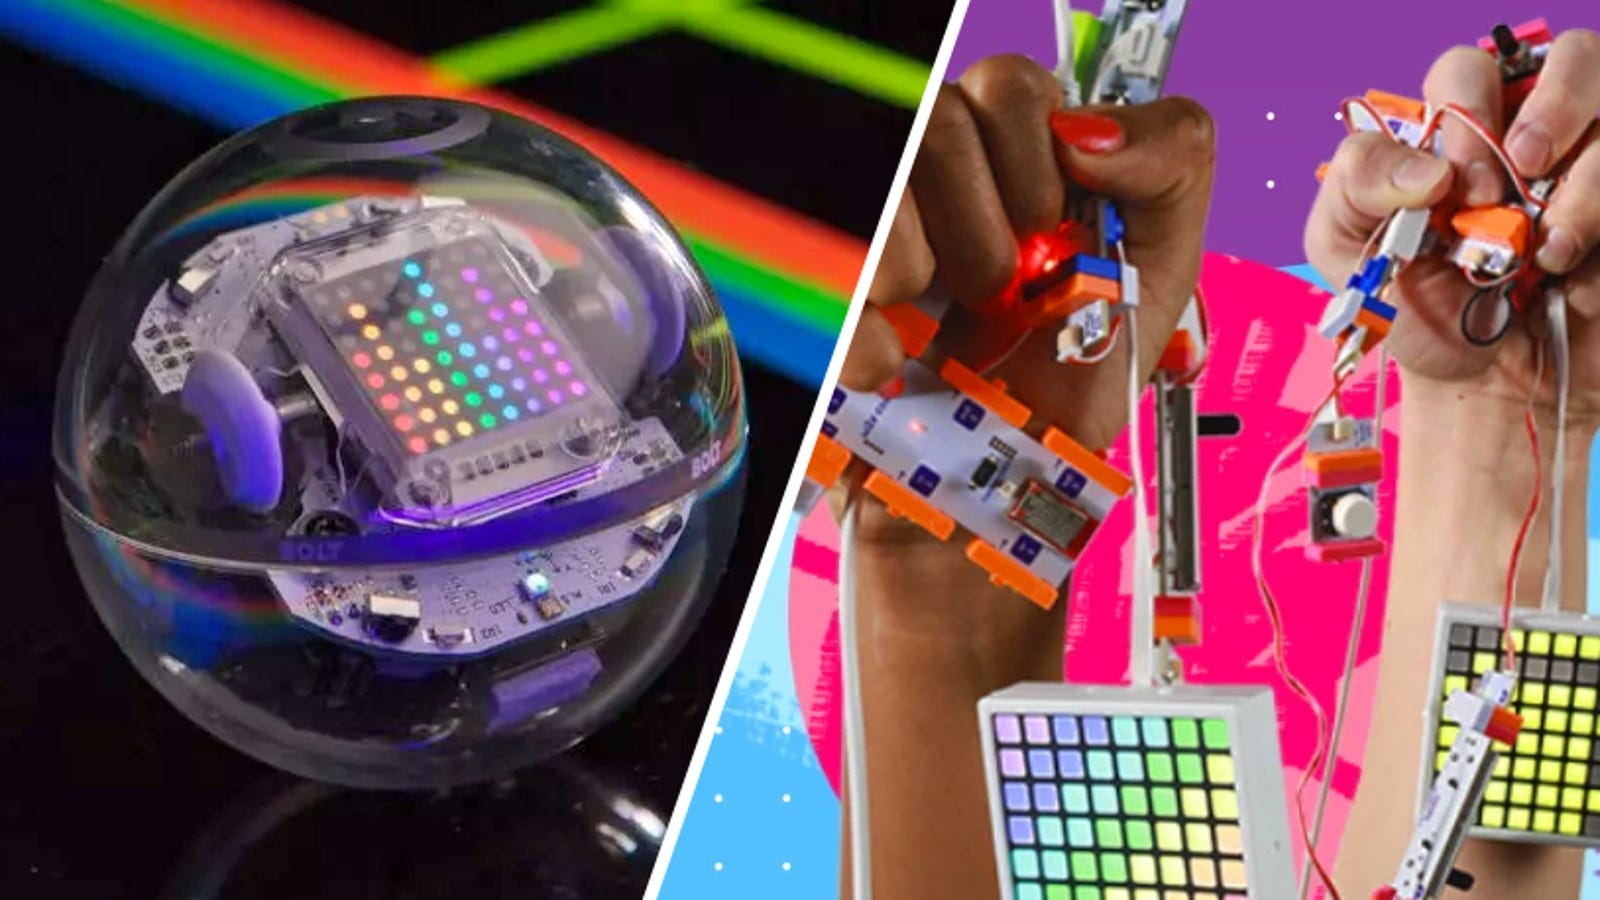 Sphero Just Bought littleBits to Become One of the Largest Makers of Educational Toys